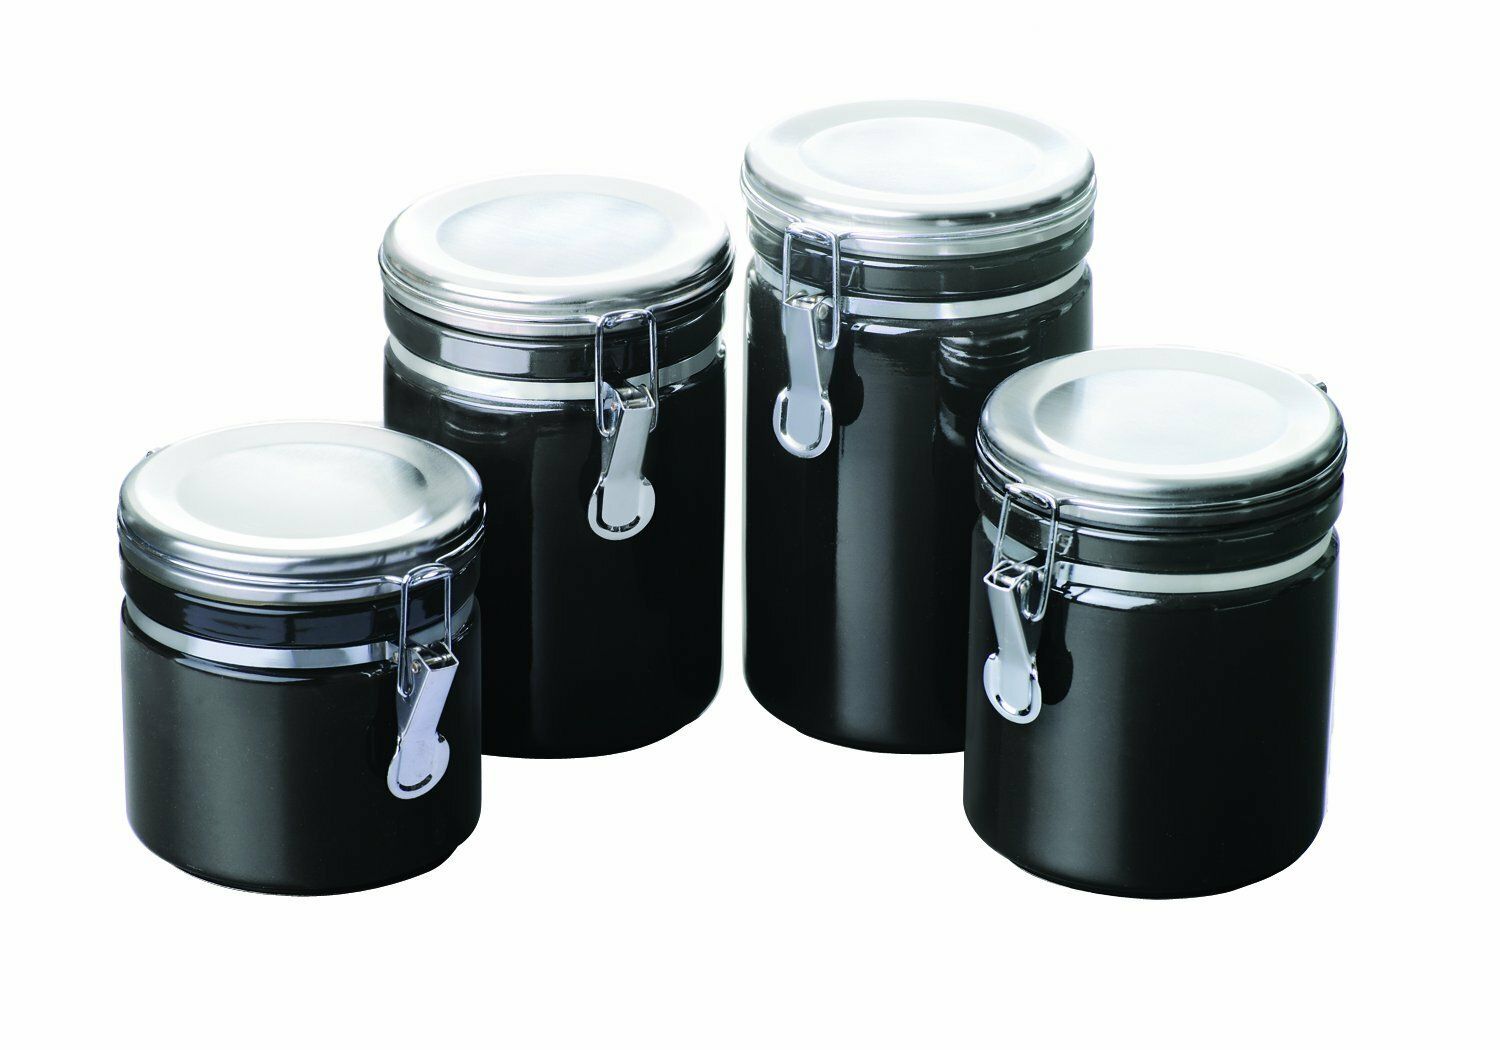 Anchor hocking 4 piece ceramic canister set ebay for Kitchen canisters set 4